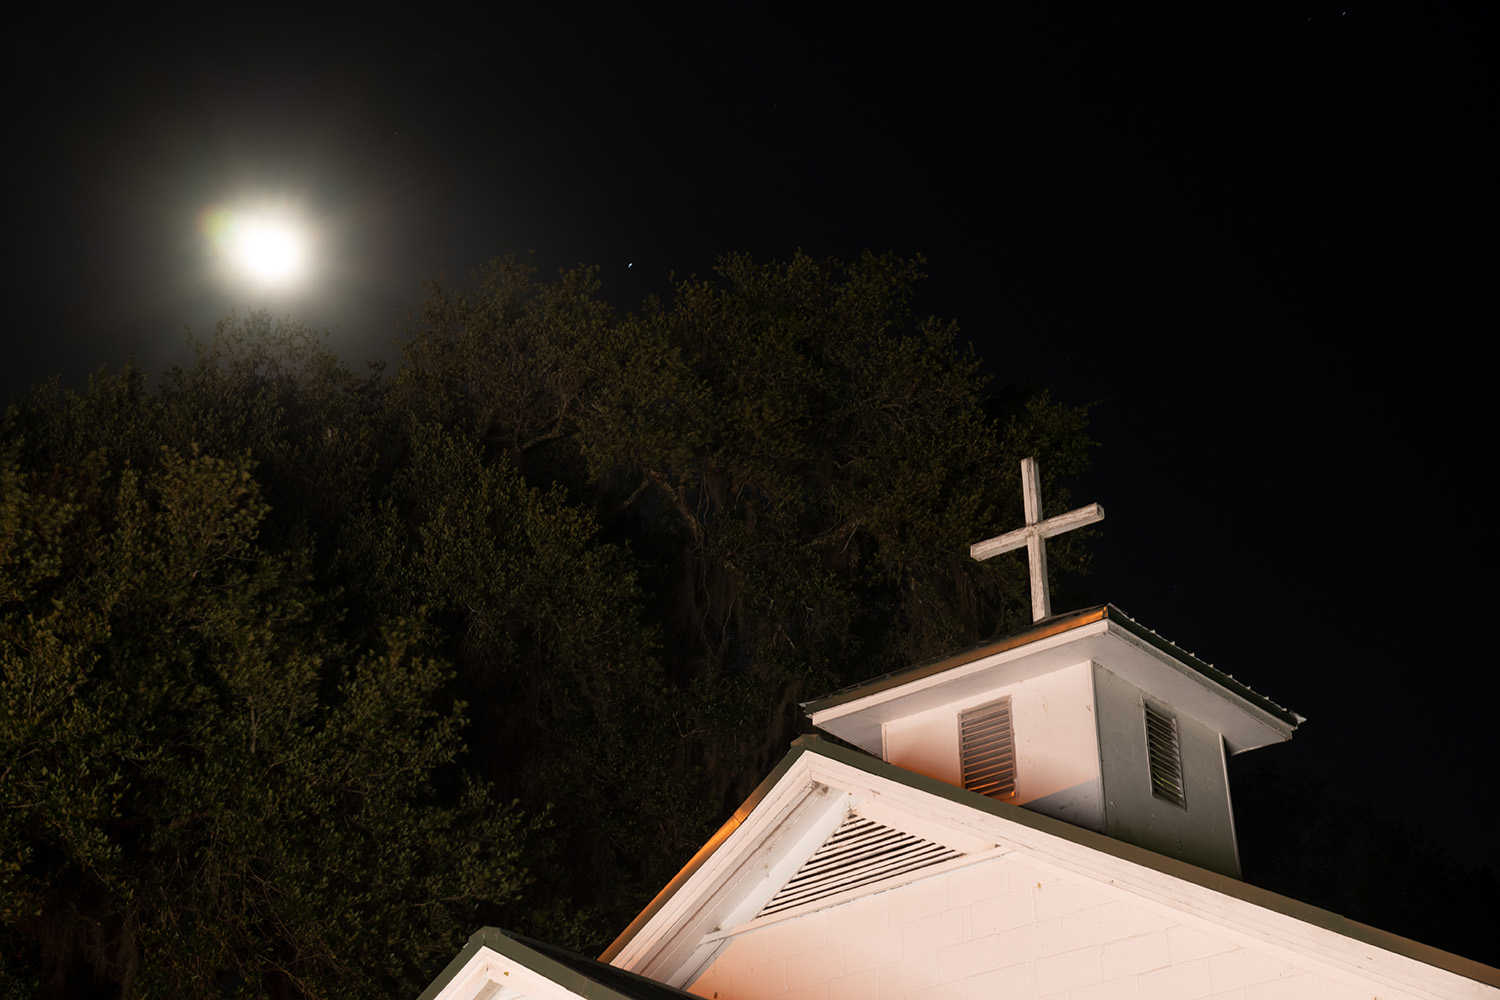 The church on a recent night.